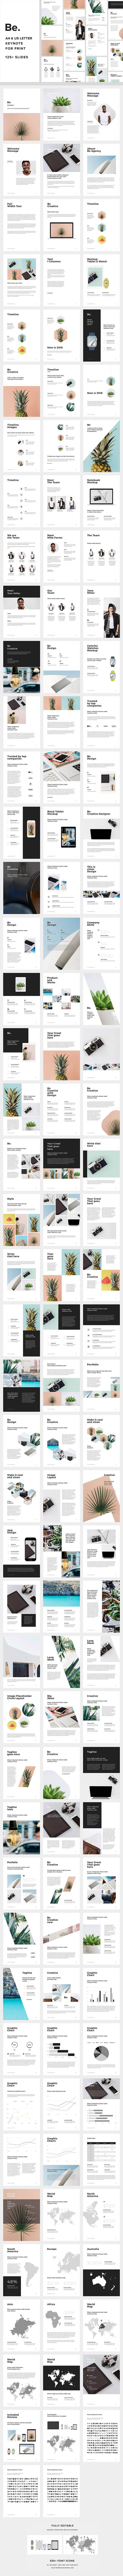 Be. A4 + US Letter Keynote Presentation for Print #printable #paper • Download ➝ https://graphicriver.net/item/be-a4-us-letter-keynote-presentation-for-print/19524763?ref=pxcr